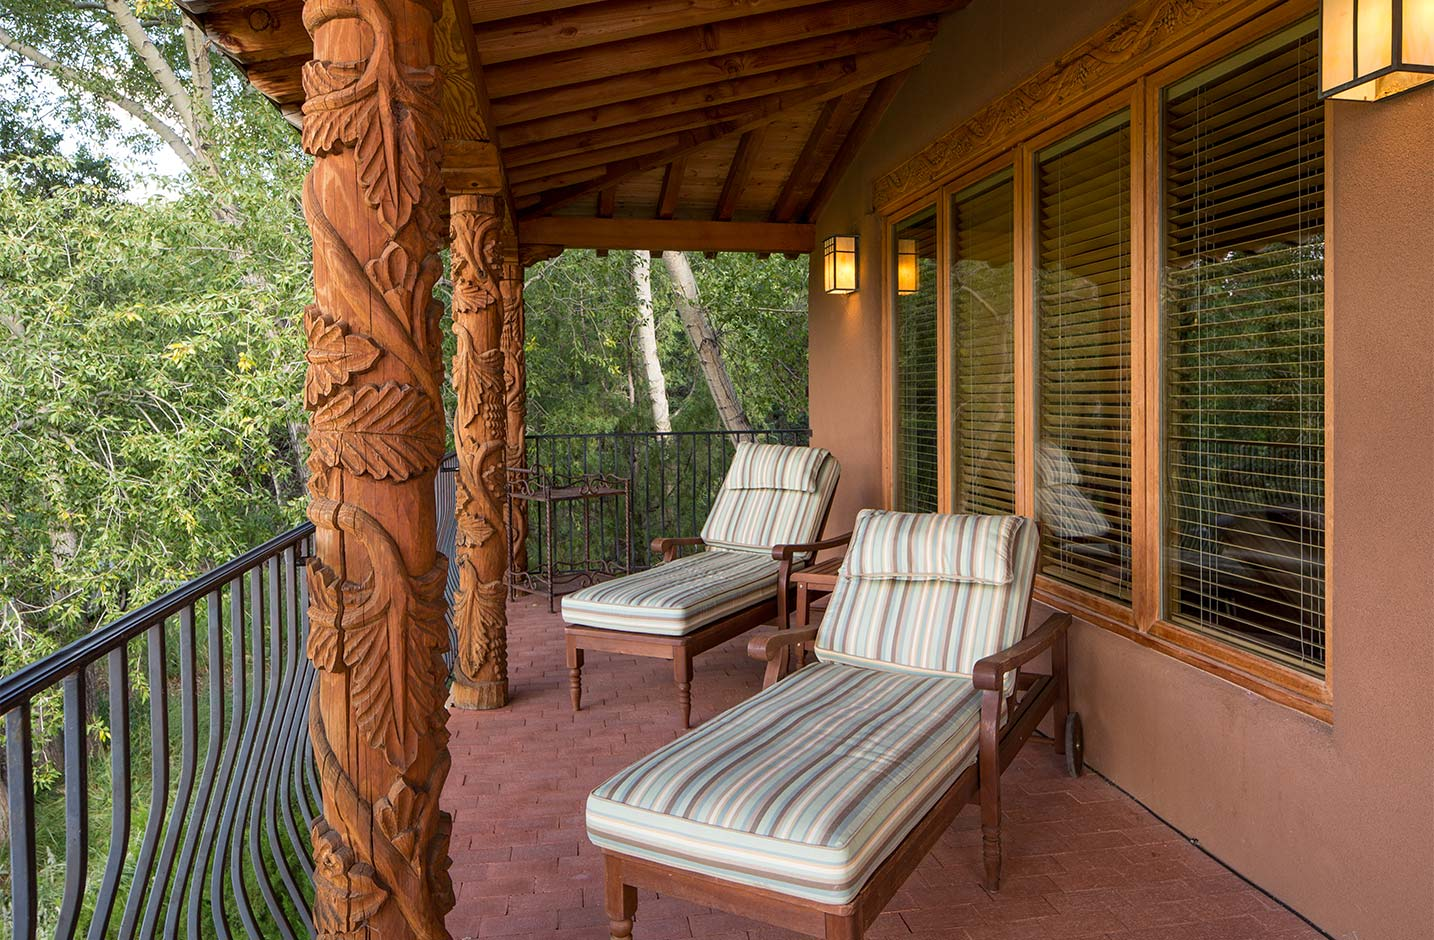 Private balcony with lounge chairs